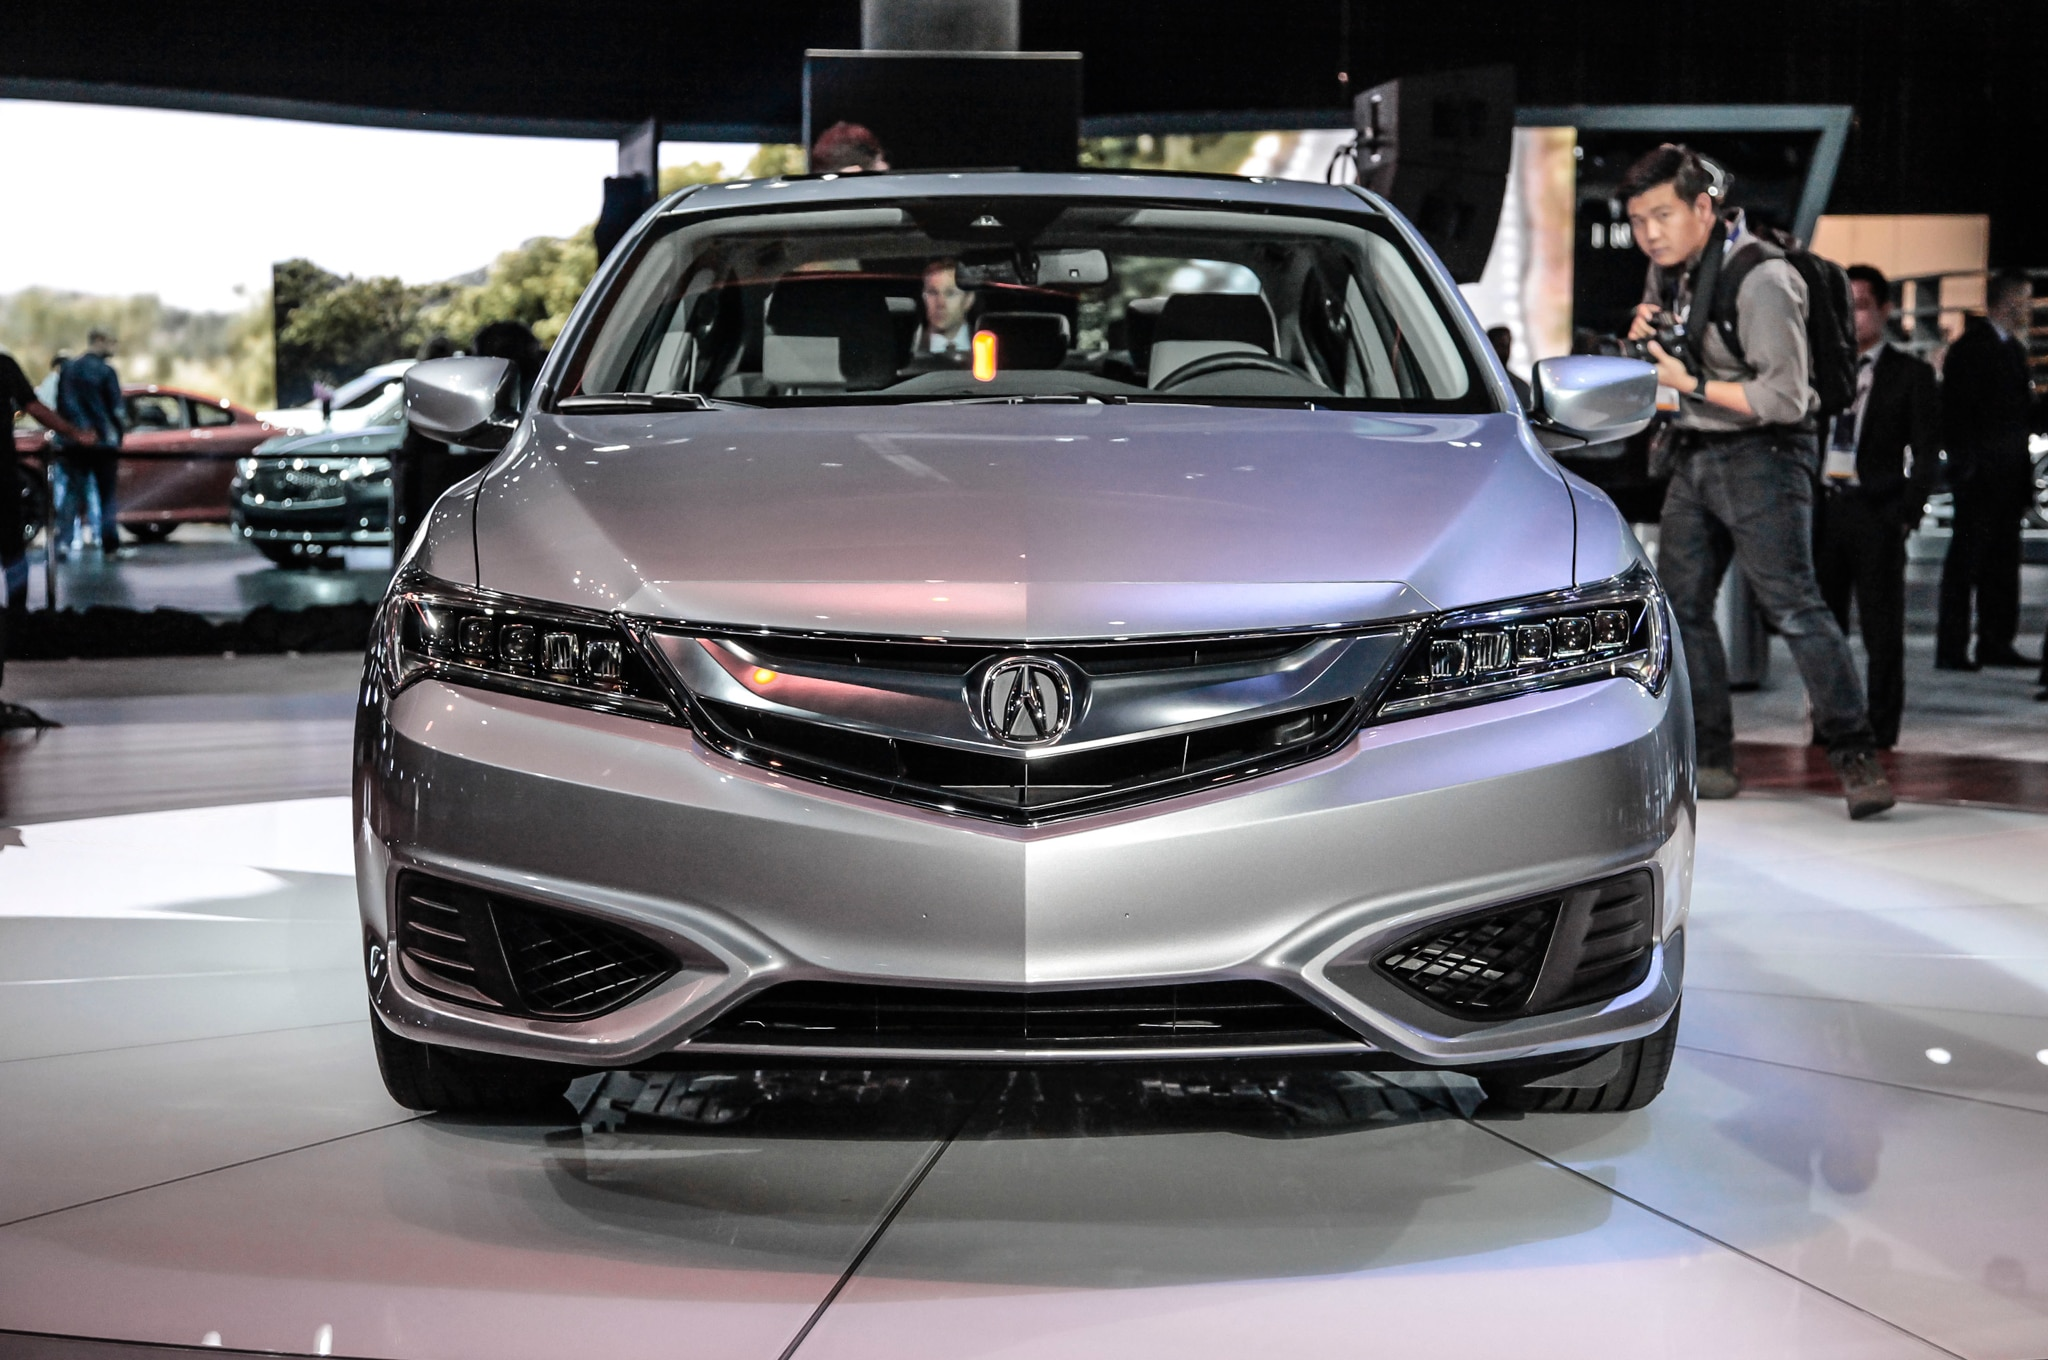 2016 Acura ILX Refreshed At Los Angeles Auto Show